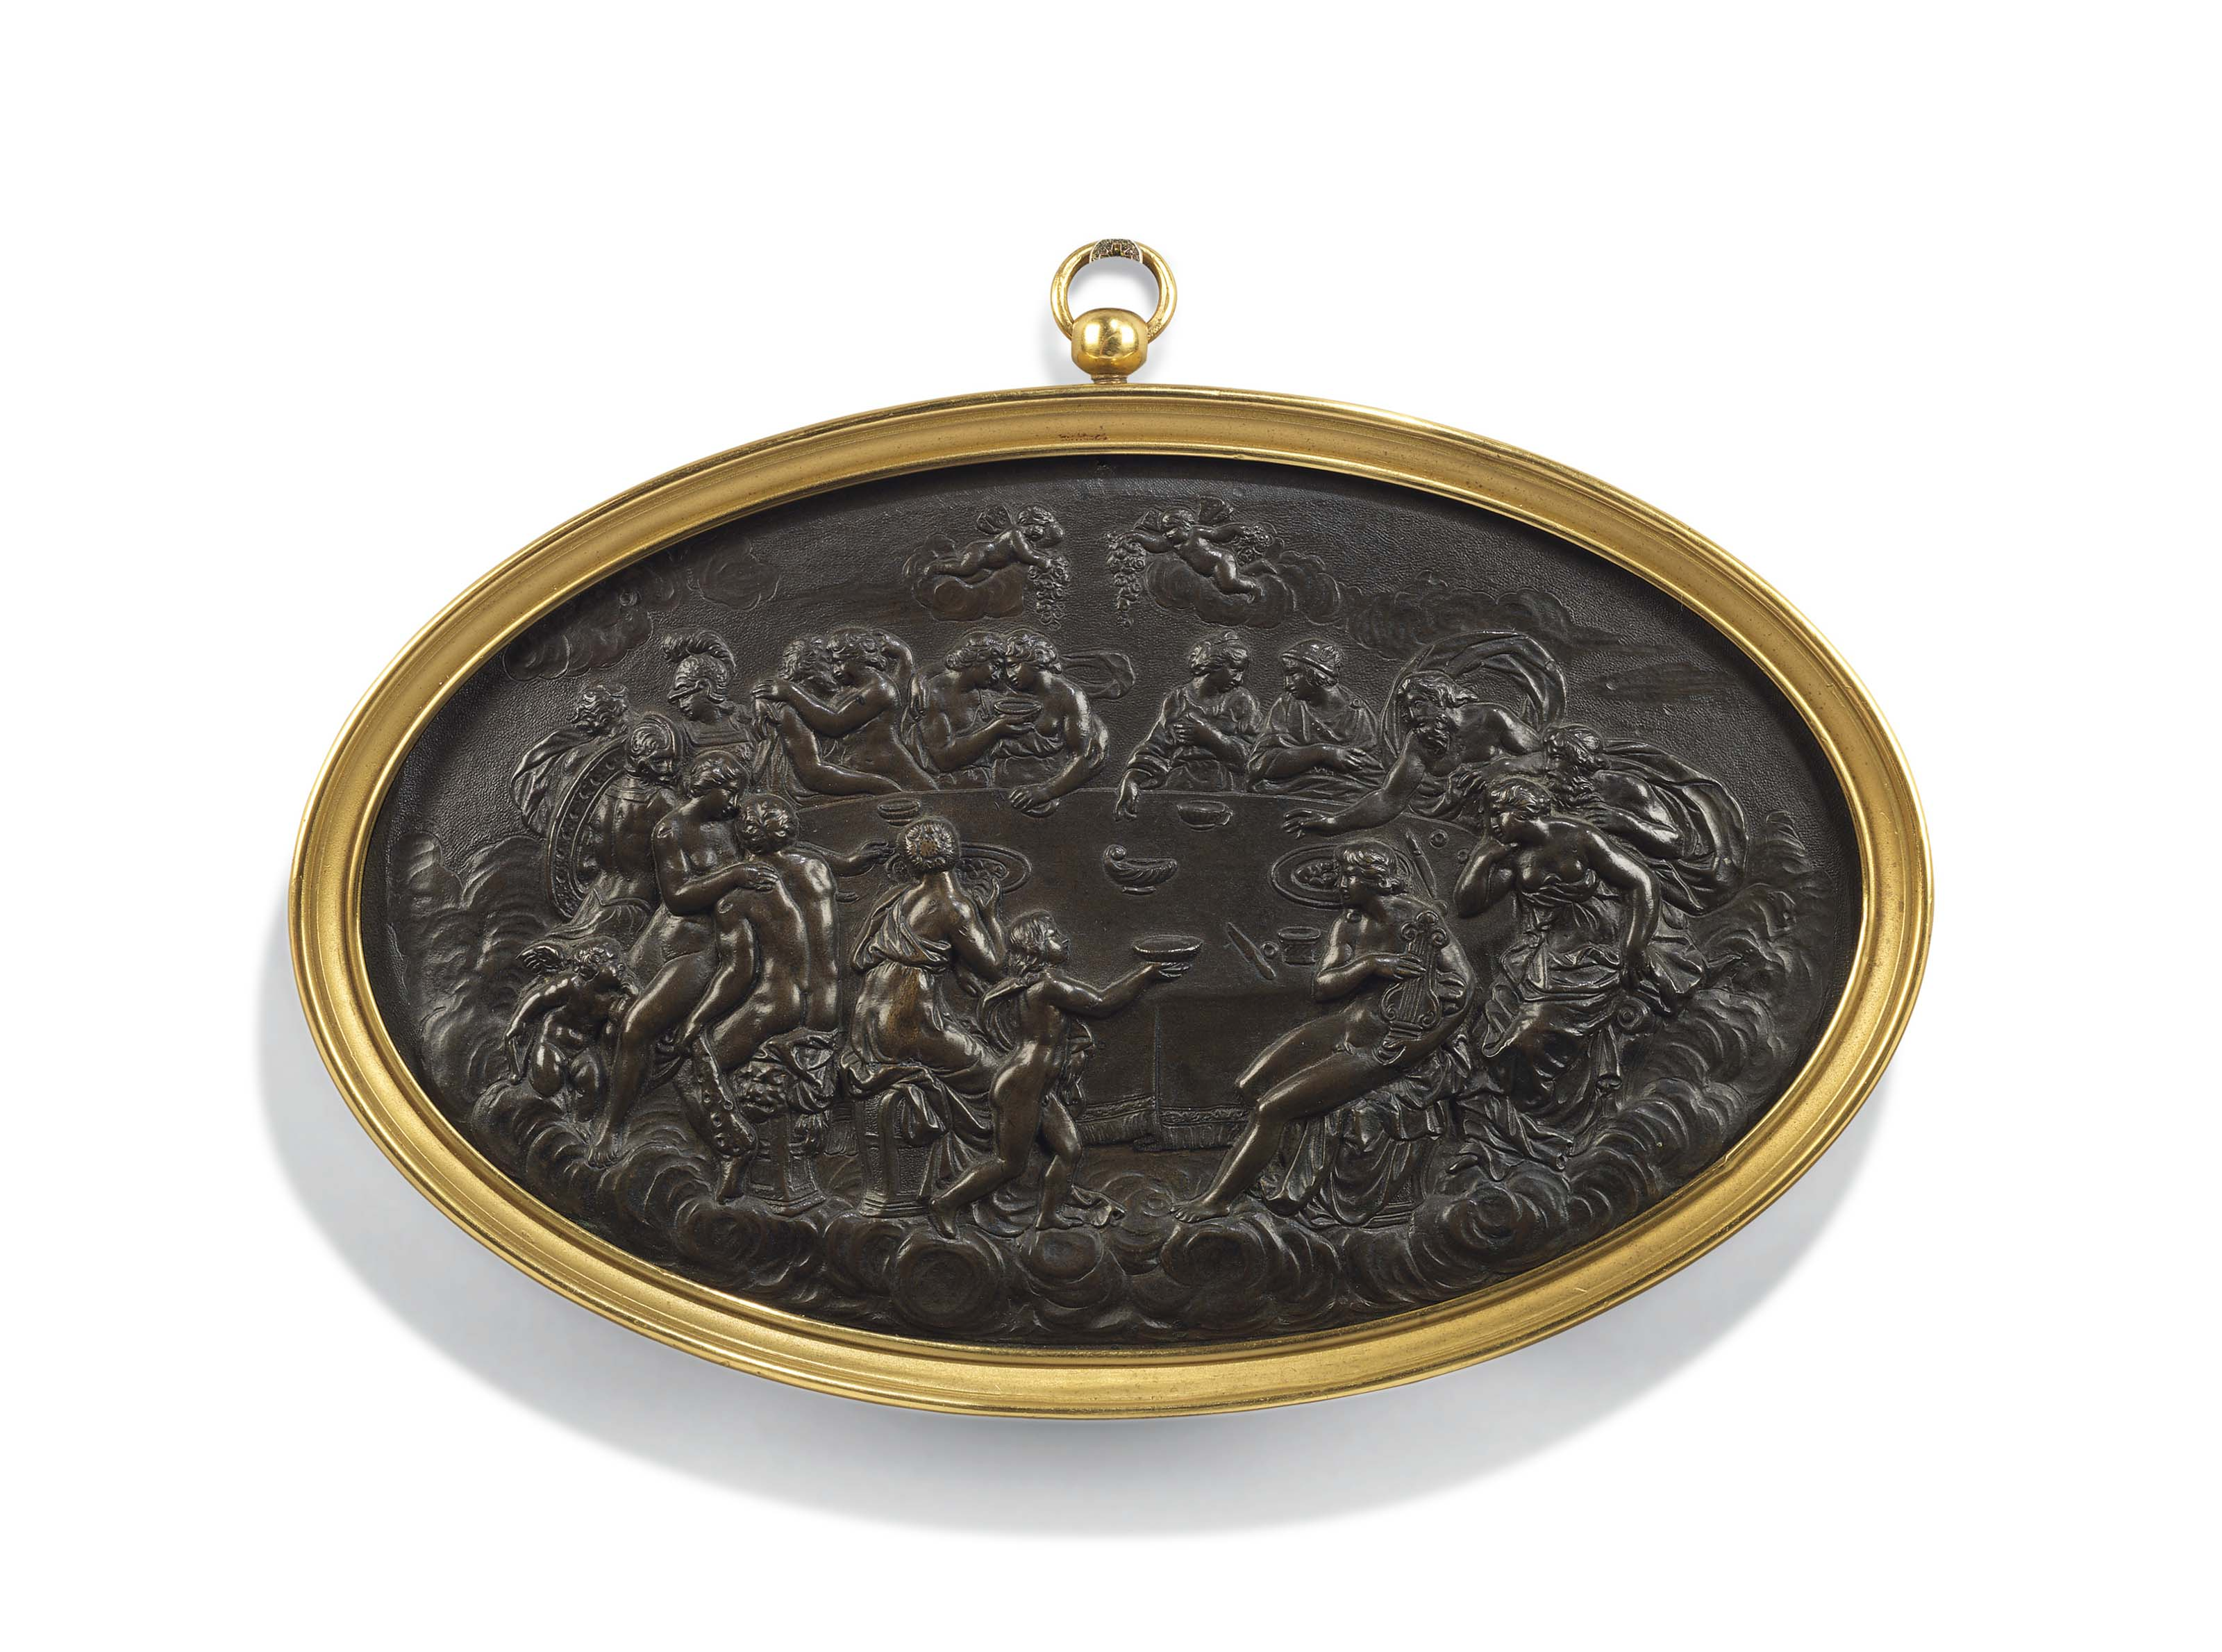 A BRONZE OVAL RELIEF OF THE FEAST OF THE GODS